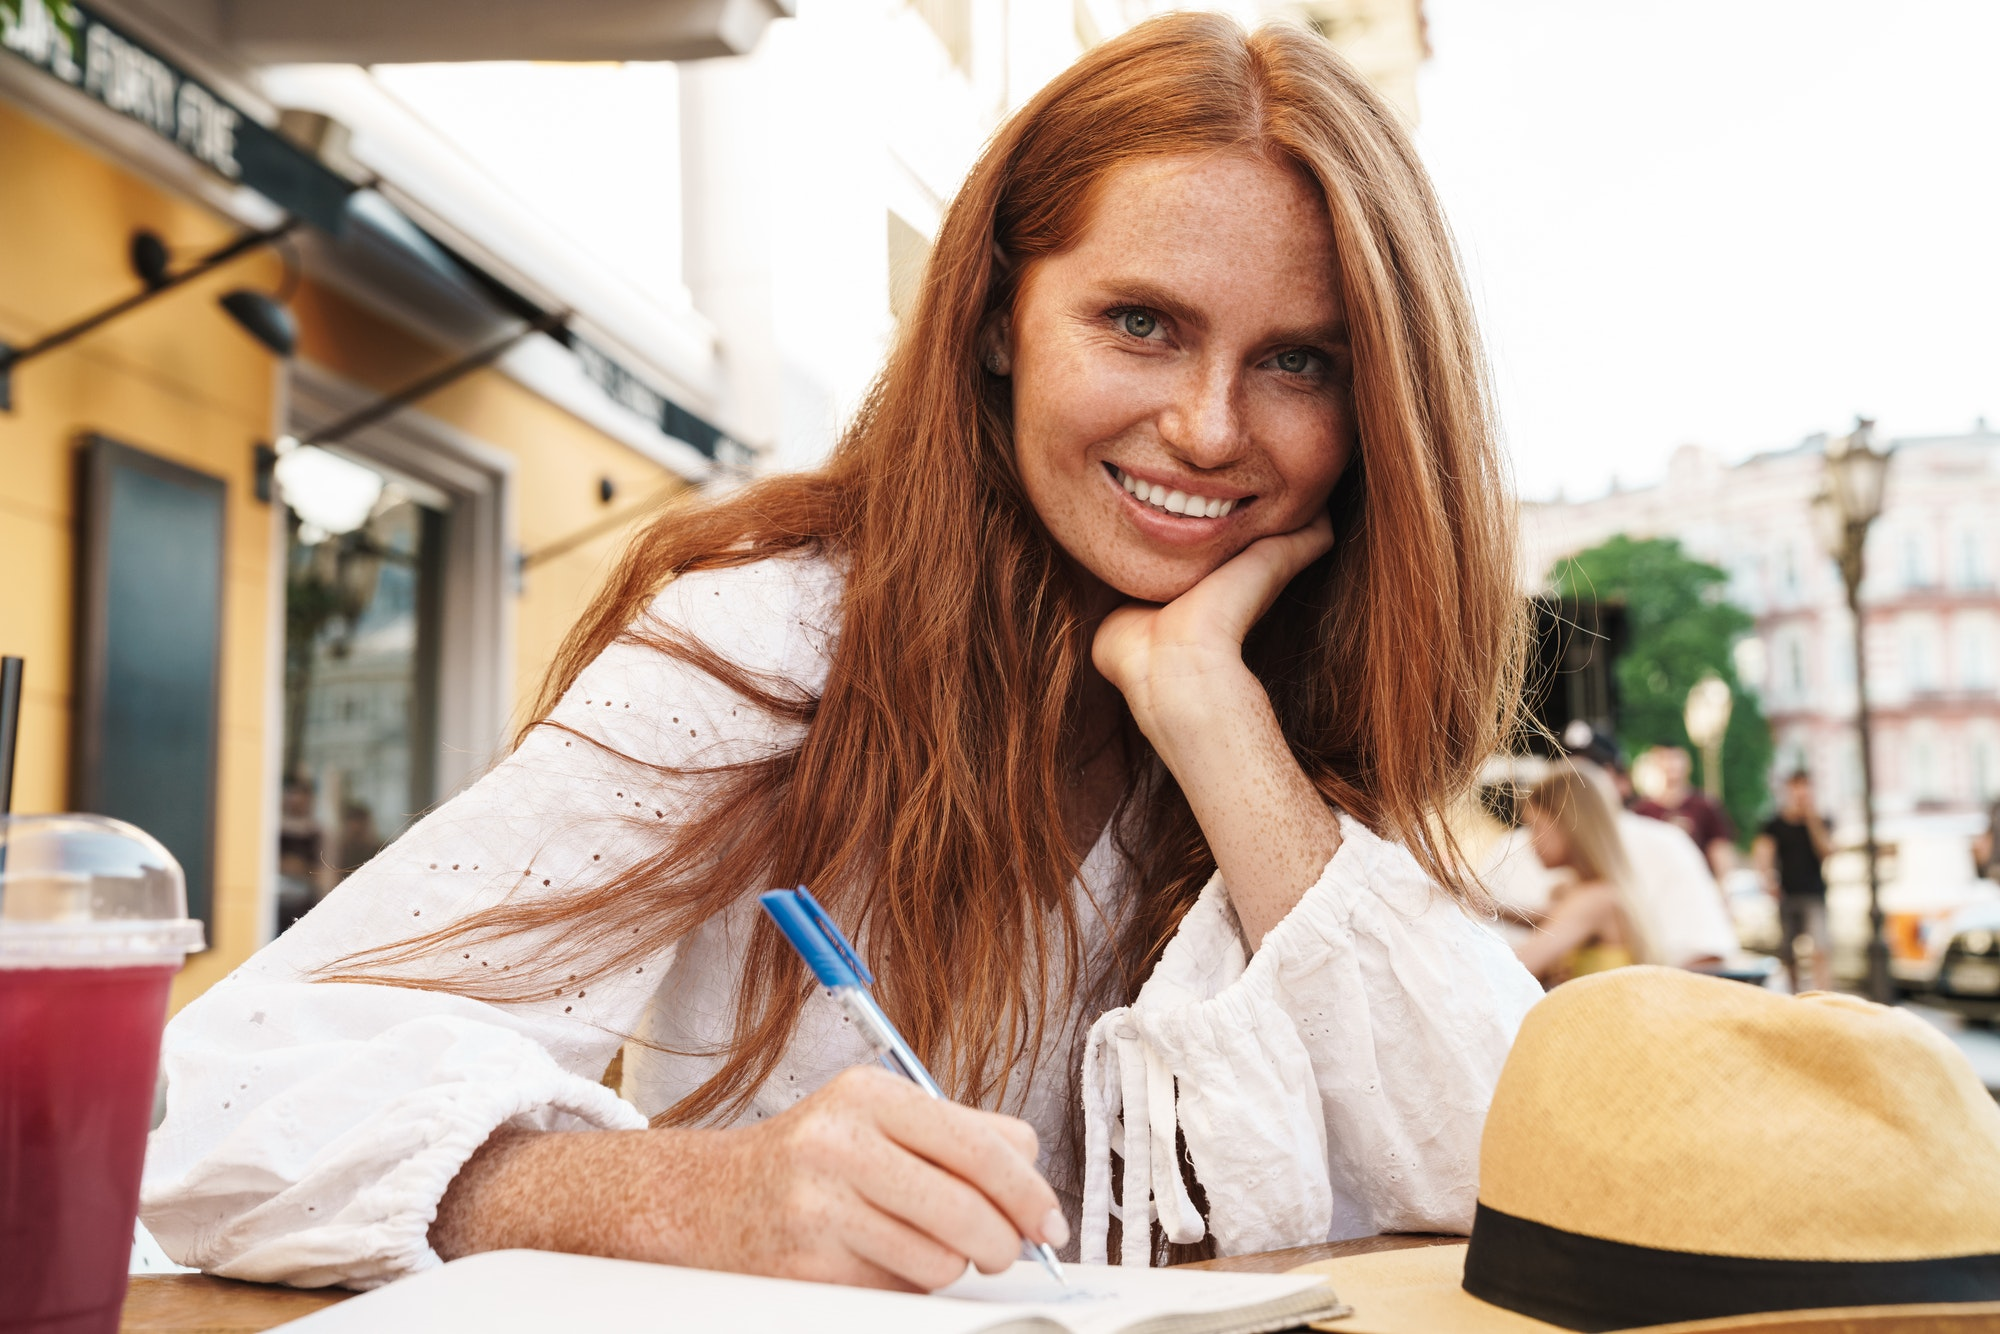 Close up of beautiful smiling red haired woman